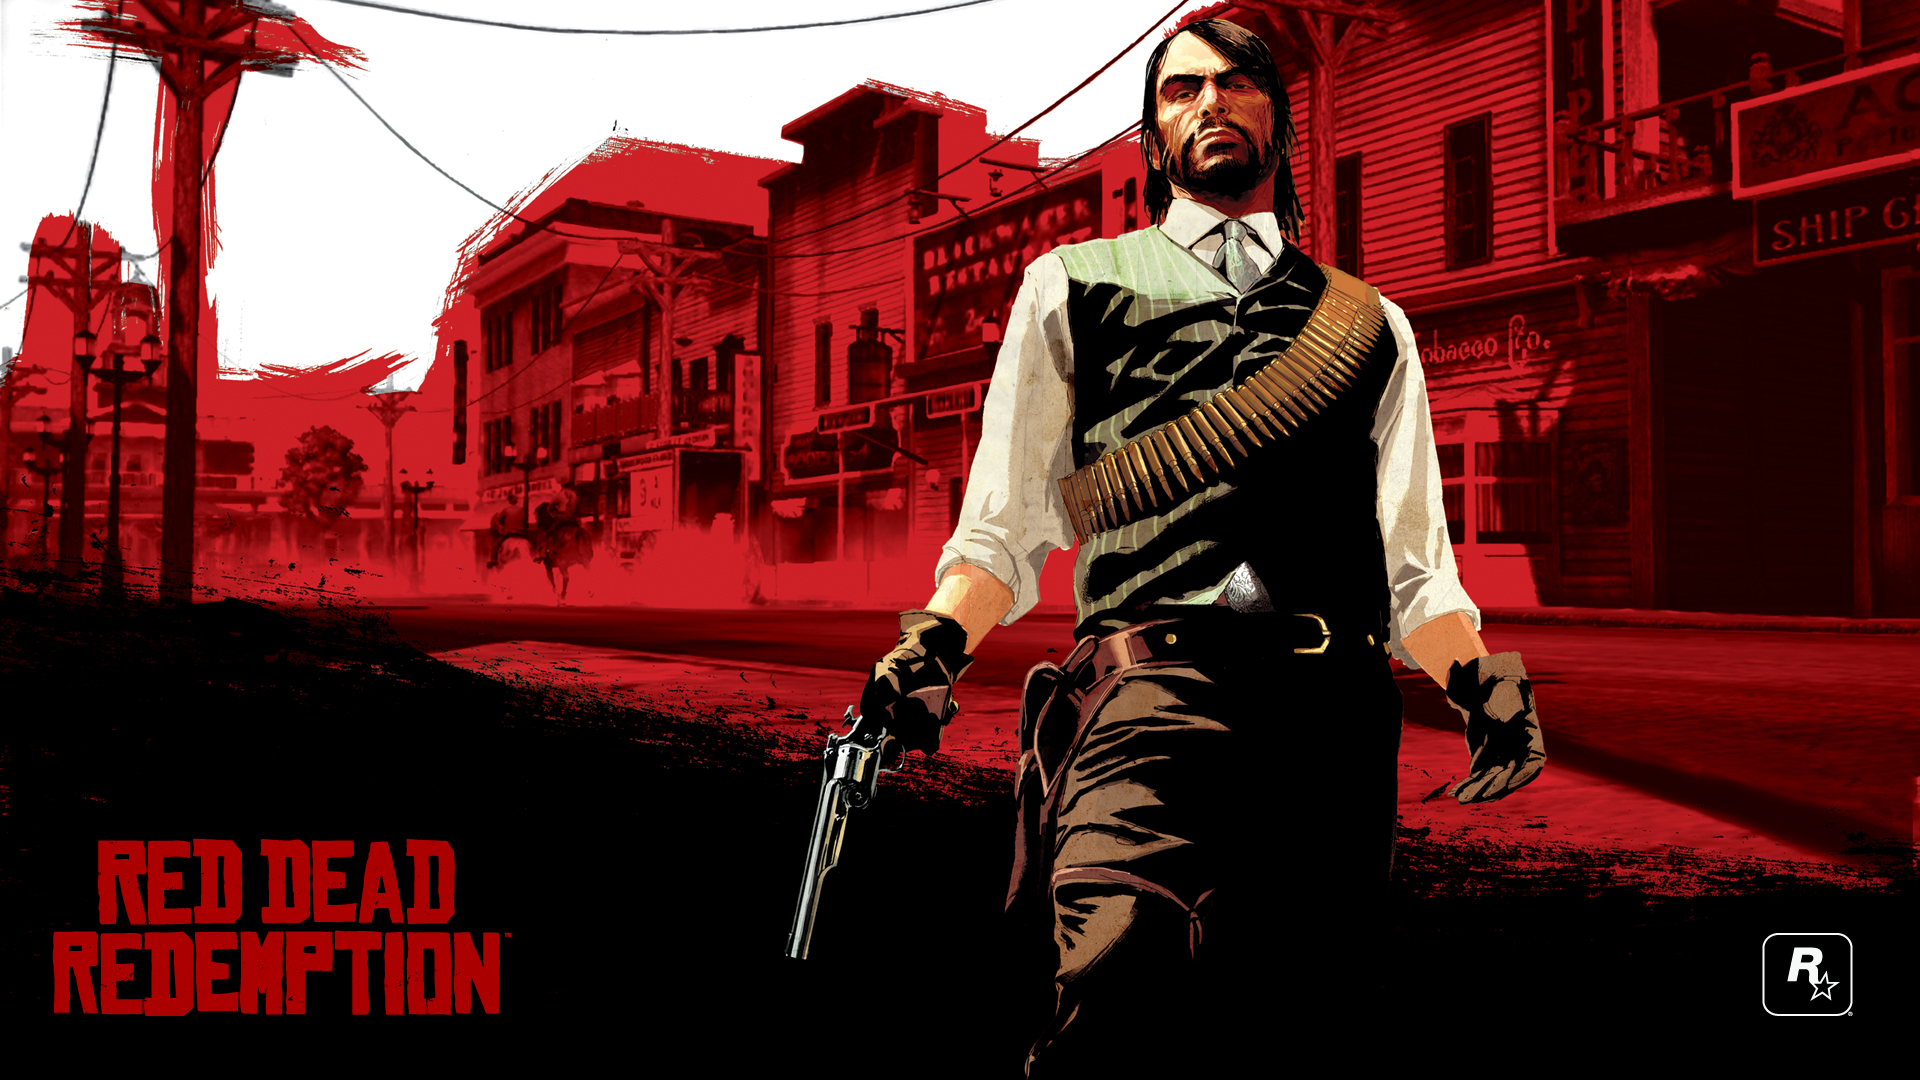 Red Dead Redemption Coming To Xbox One Mxdwn Games